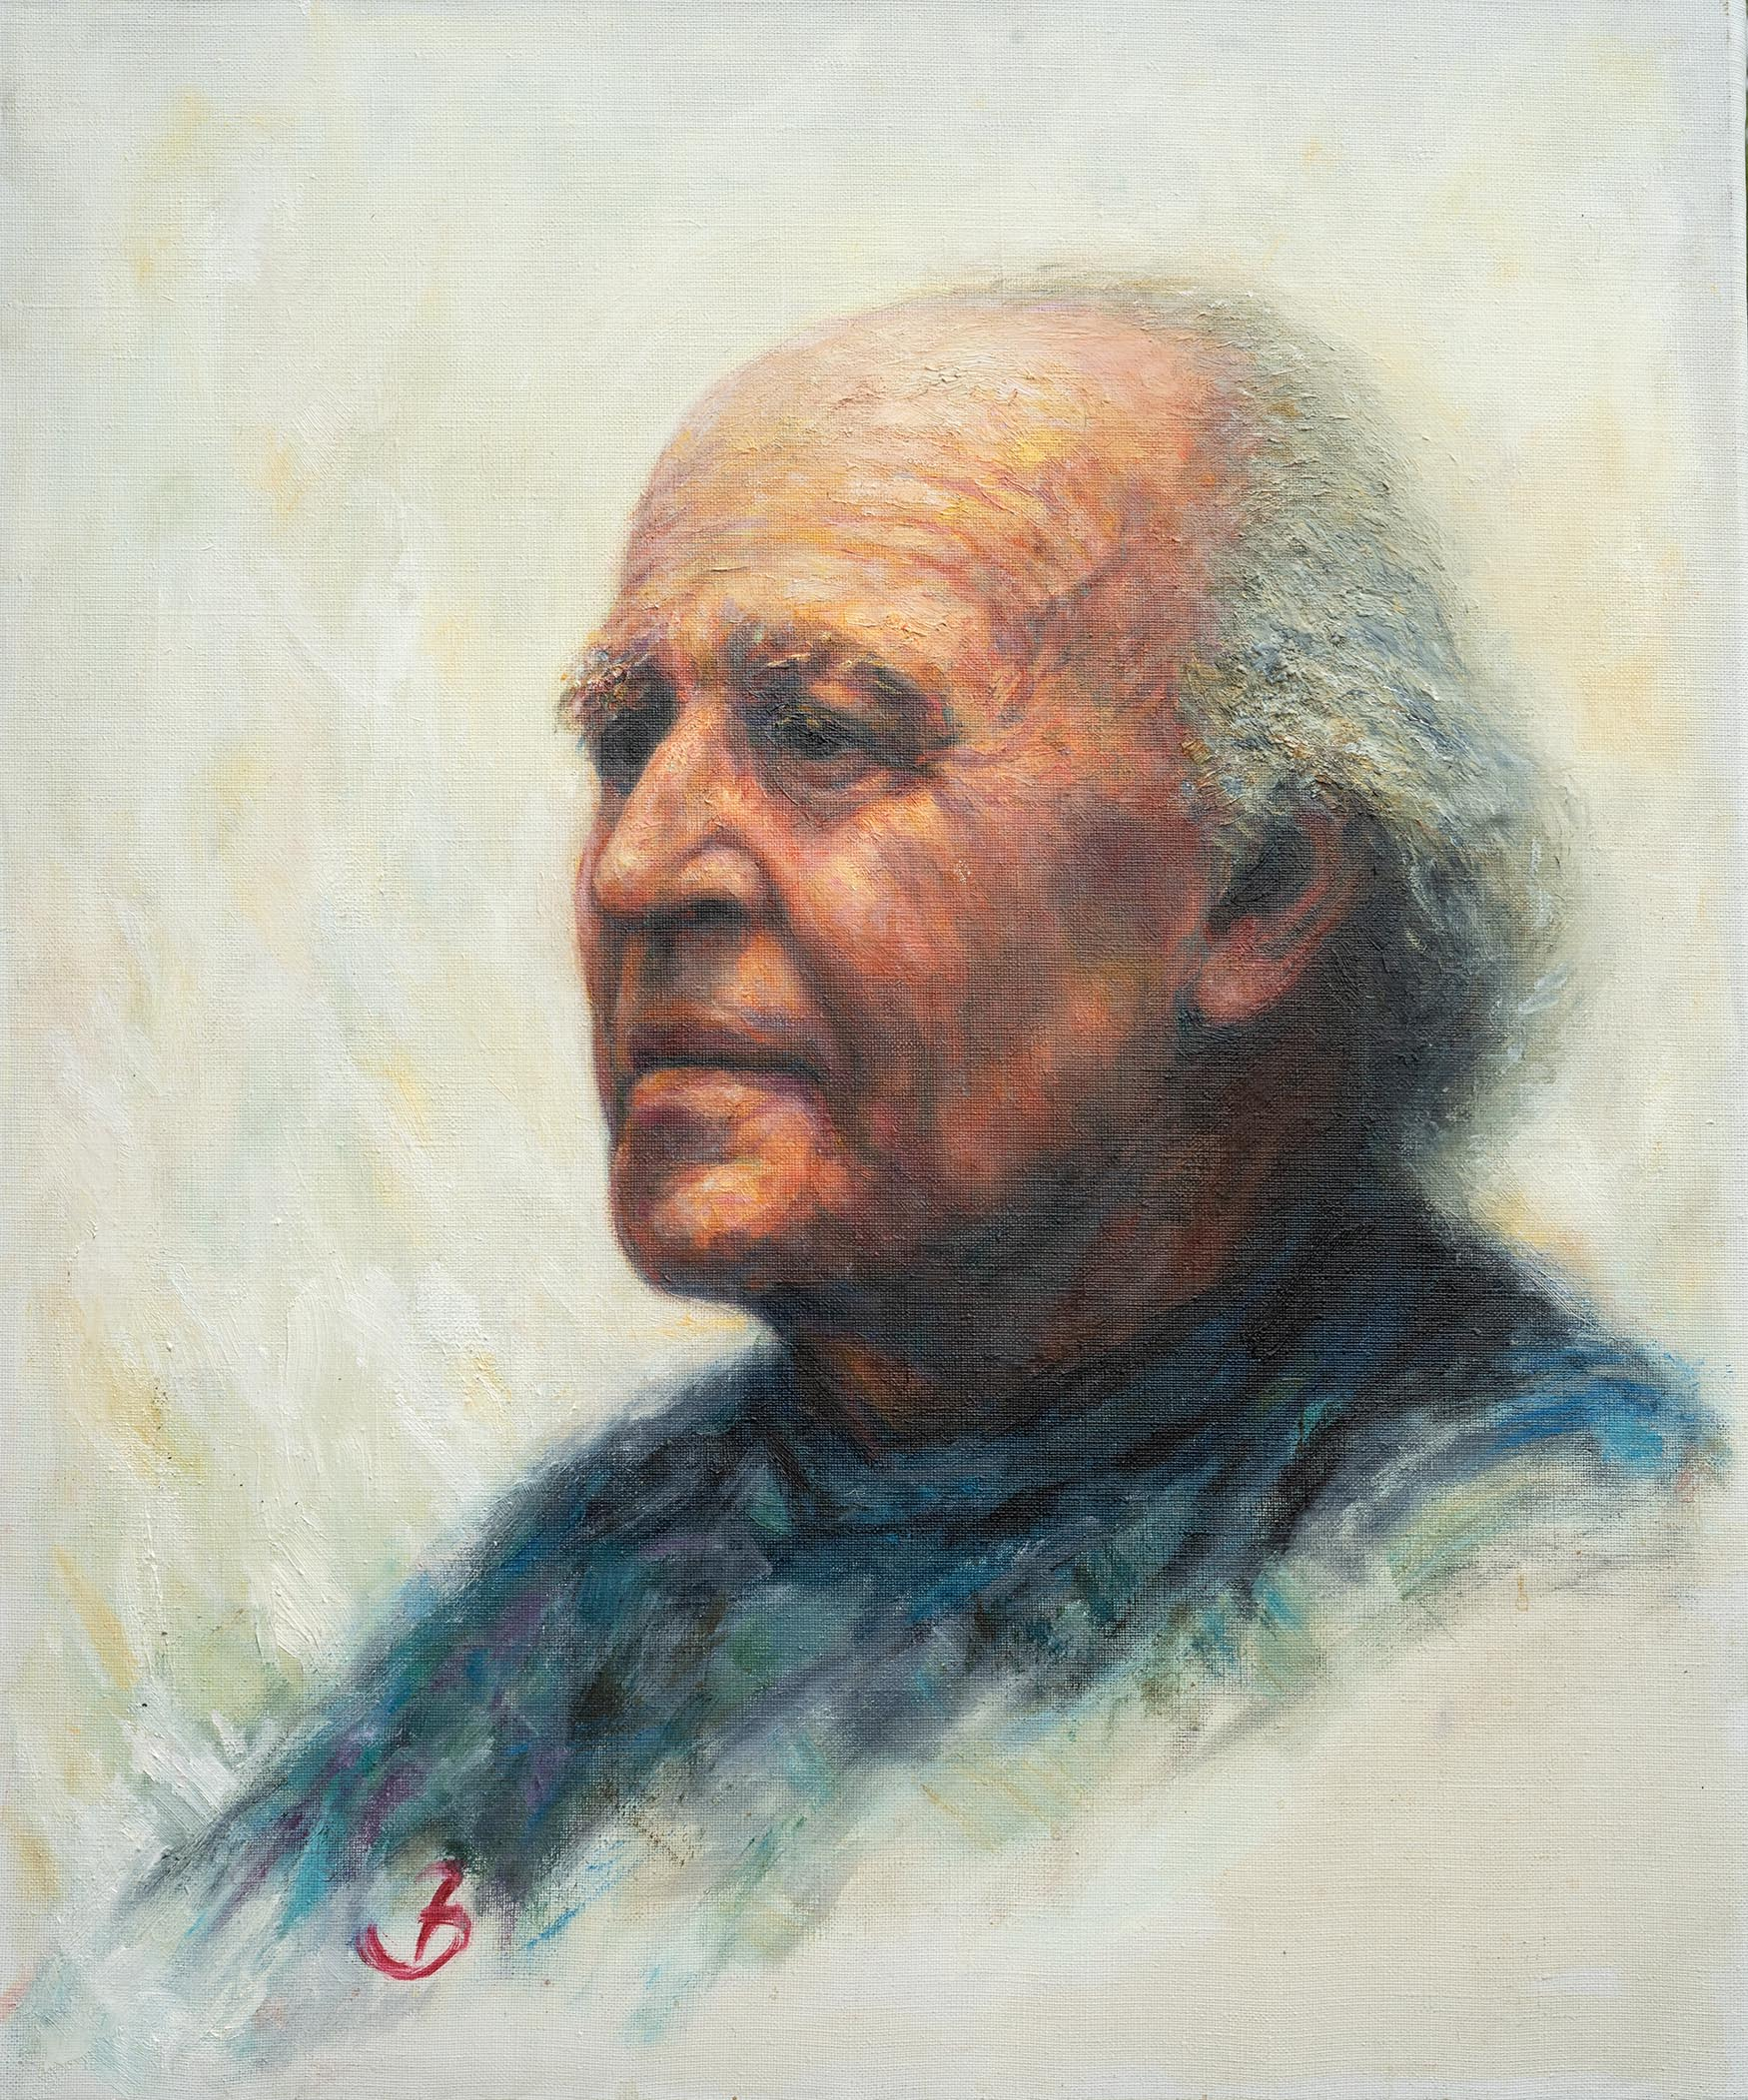 Oil painting of Ernest Bour by Jacob Bogaart, 1986.